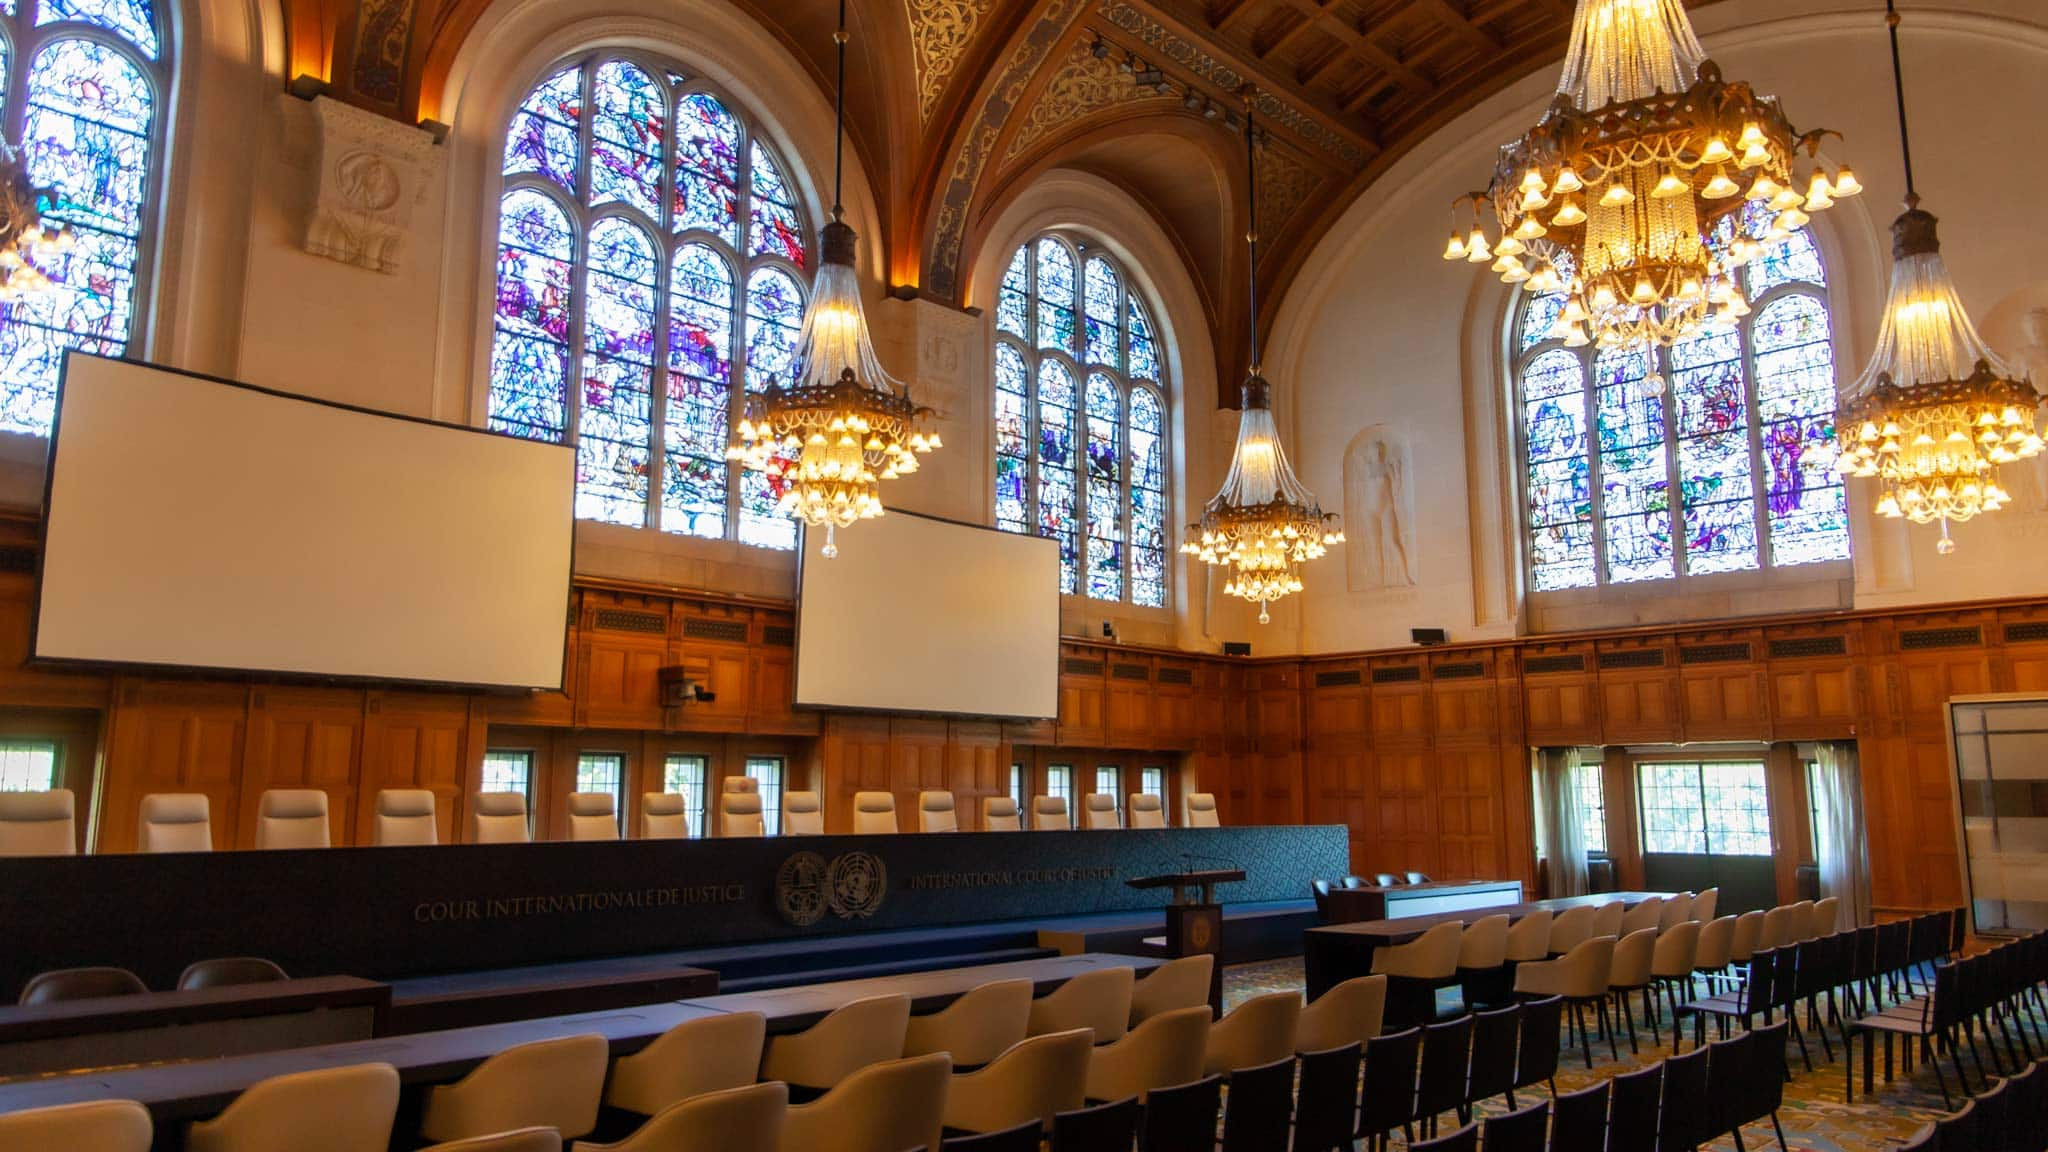 A courtroom inside the Peace Palace